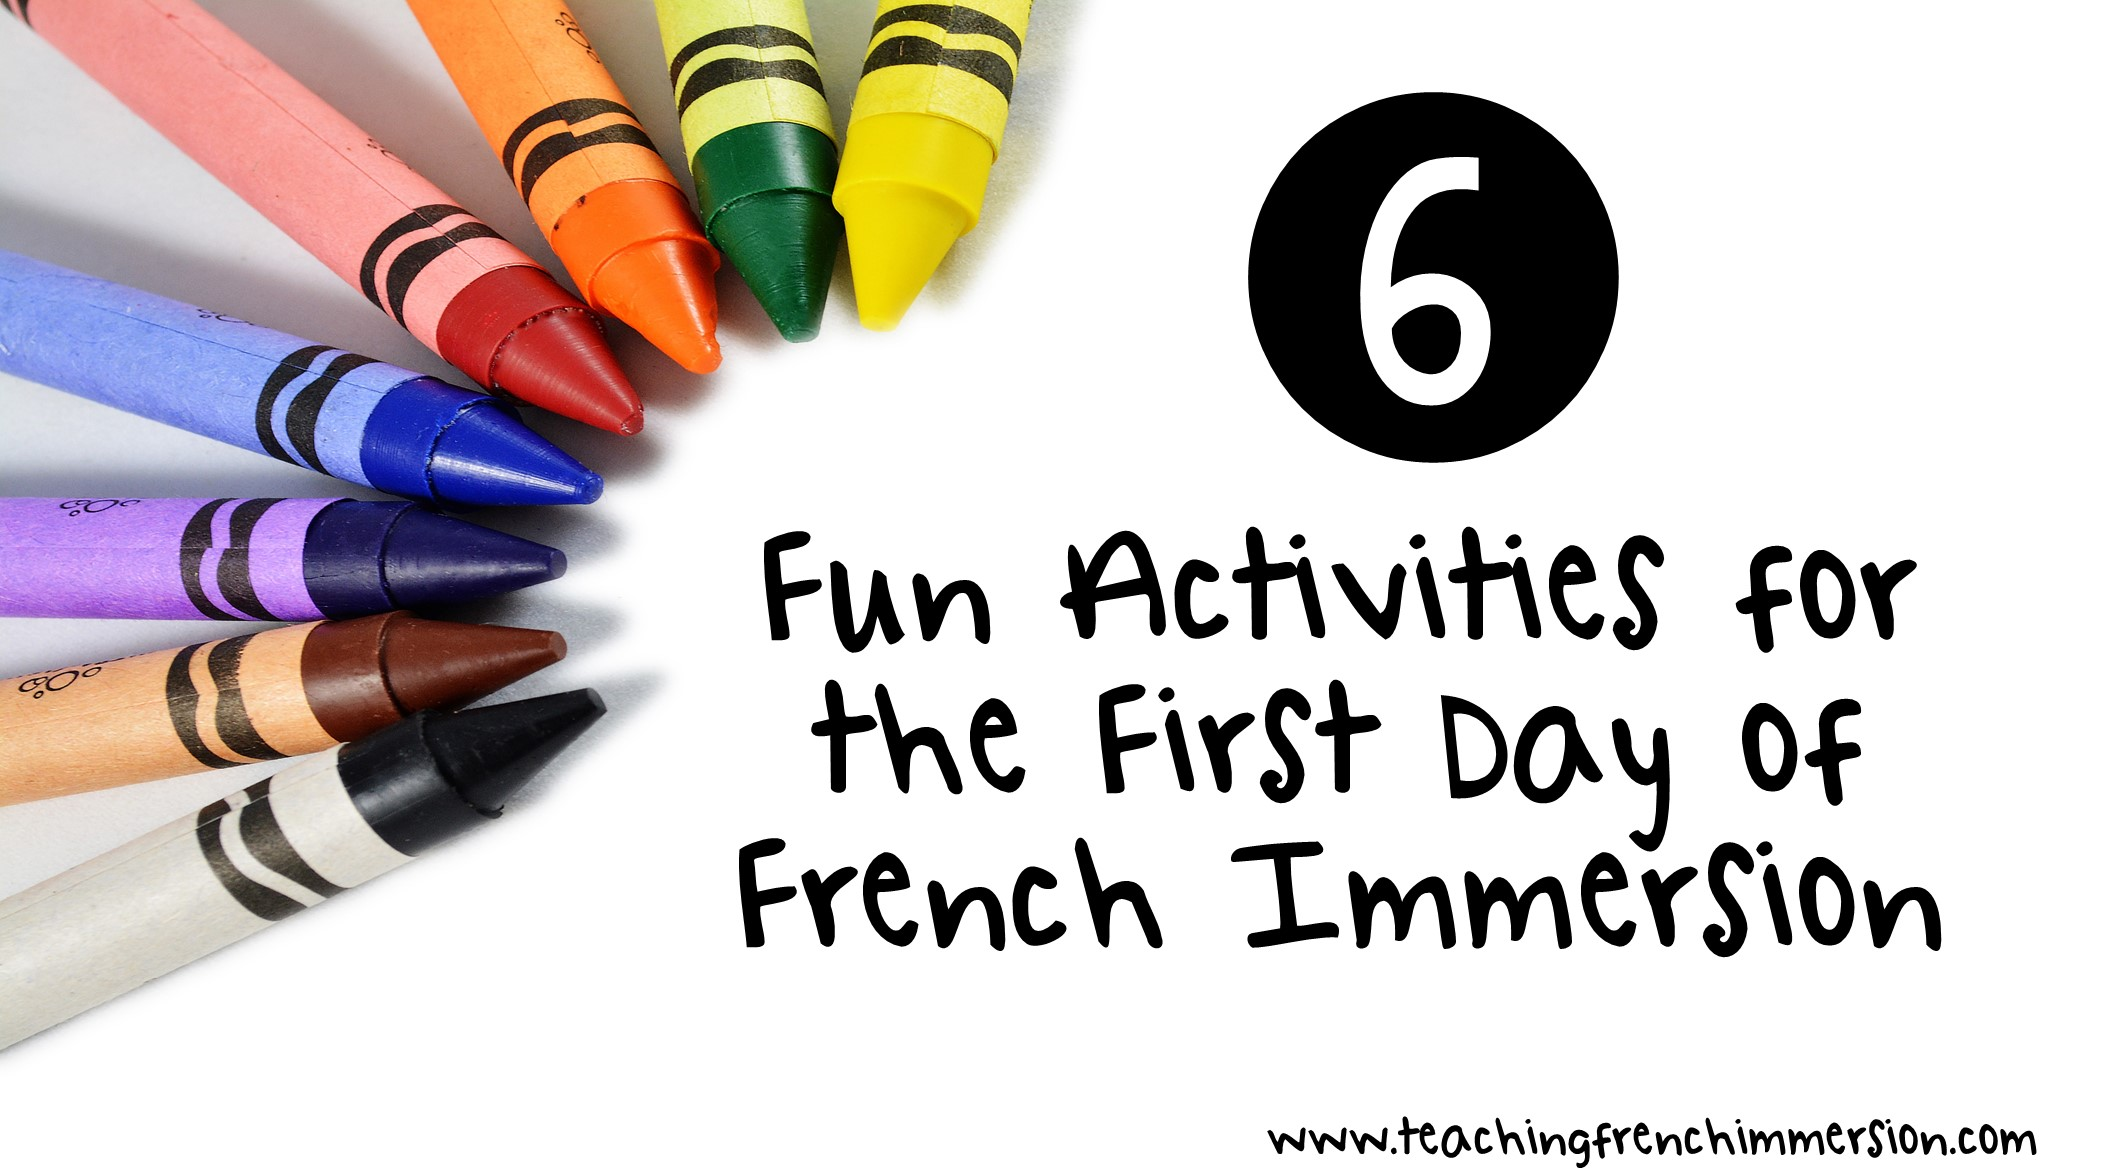 six fun first day of school activities for french immersion teaching french immersion ideas. Black Bedroom Furniture Sets. Home Design Ideas